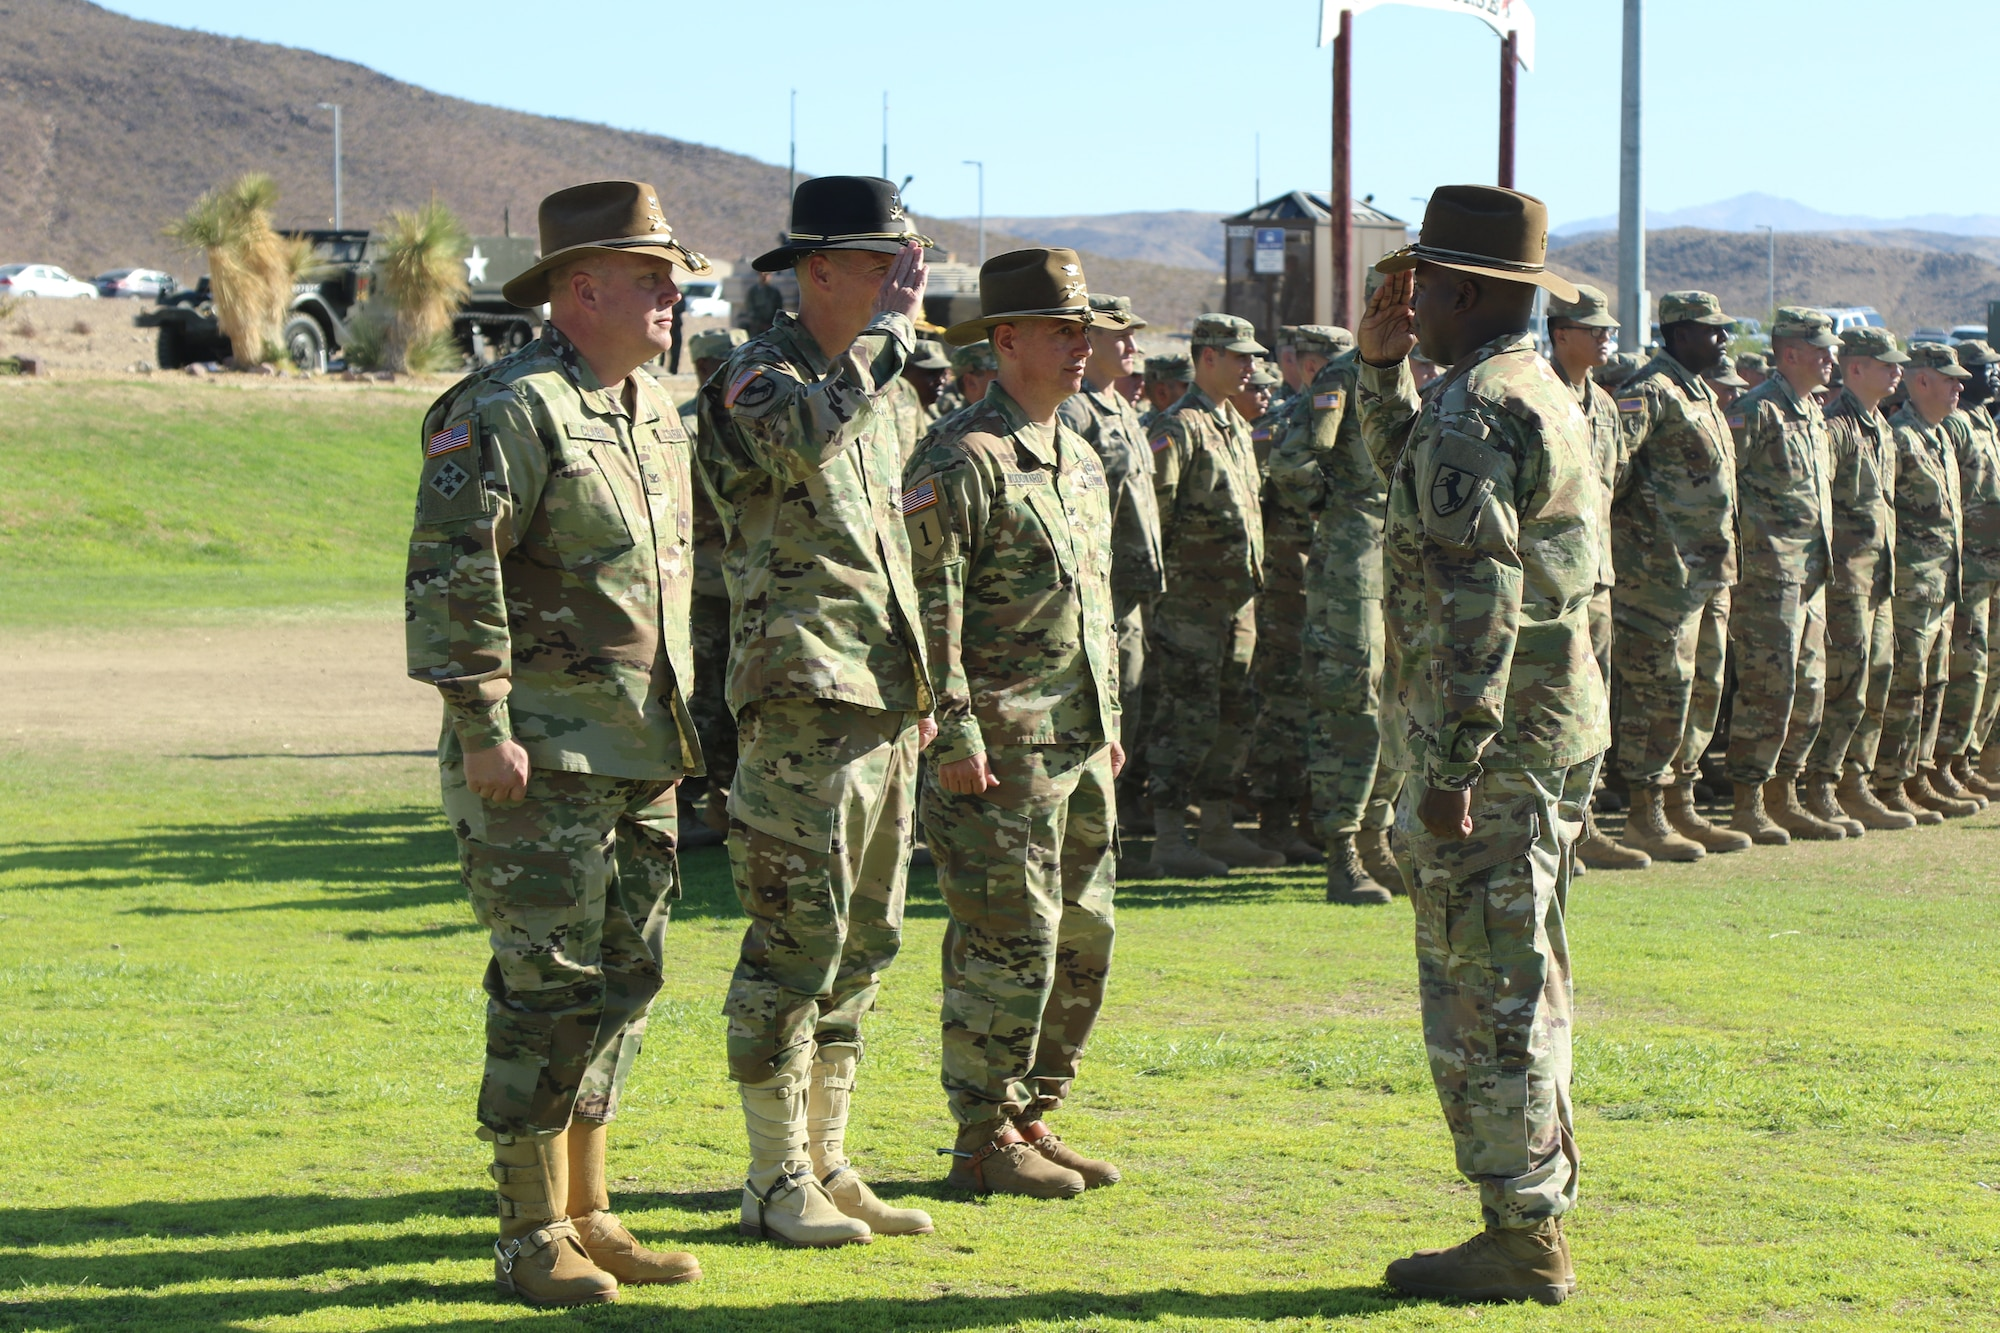 Dvids Images 11th Armored Cavalry Regiment Change Of Command Image 12 Of 17